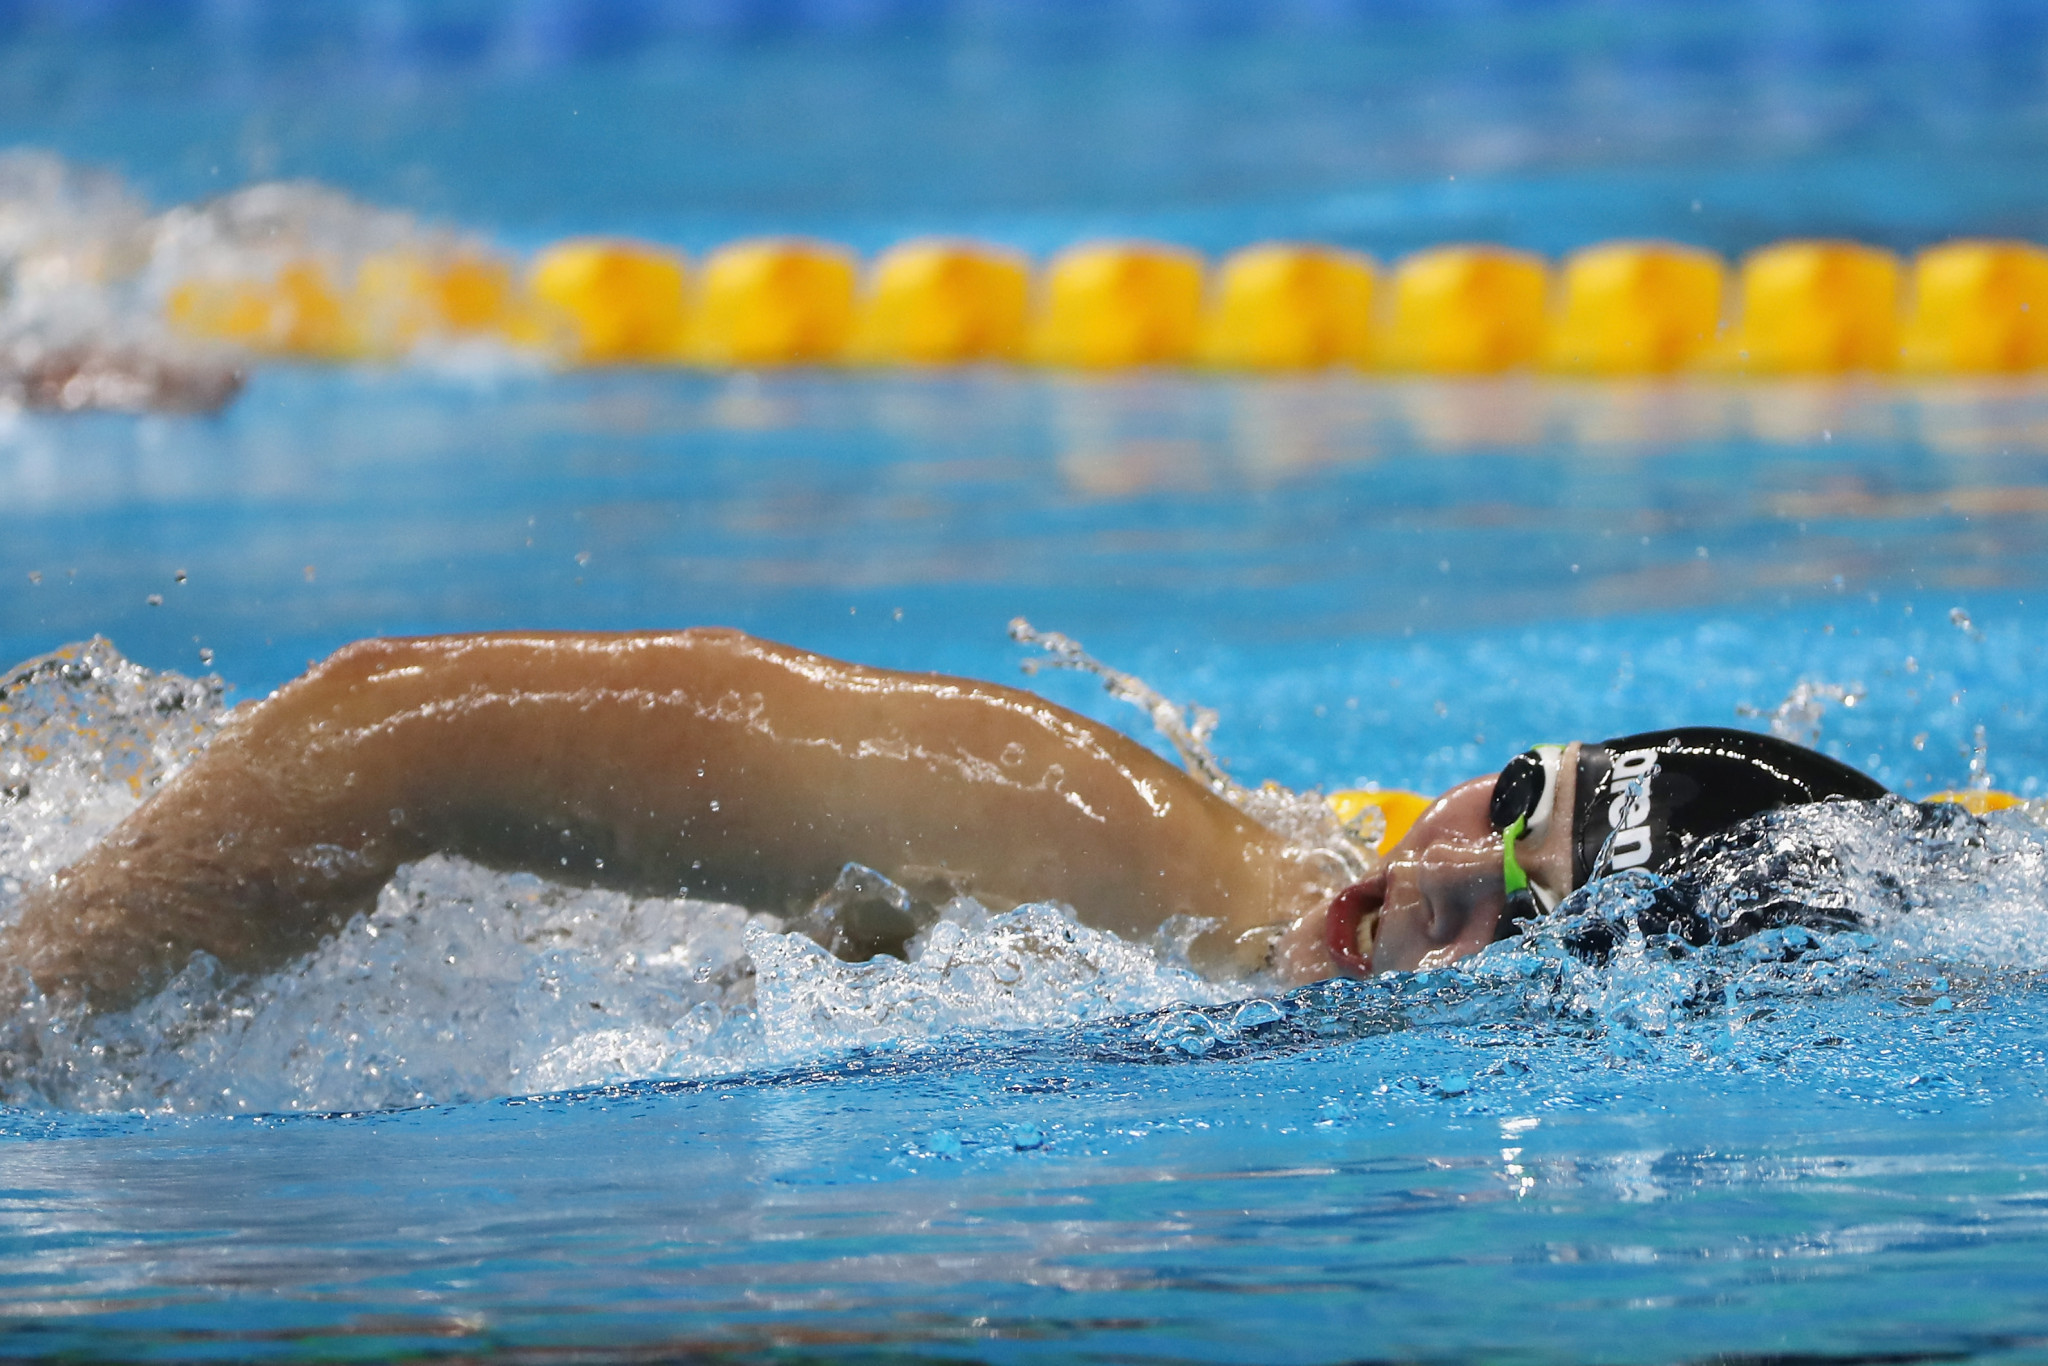 Third world record for Bruinsma, and four others, at European Para Swimming Championships